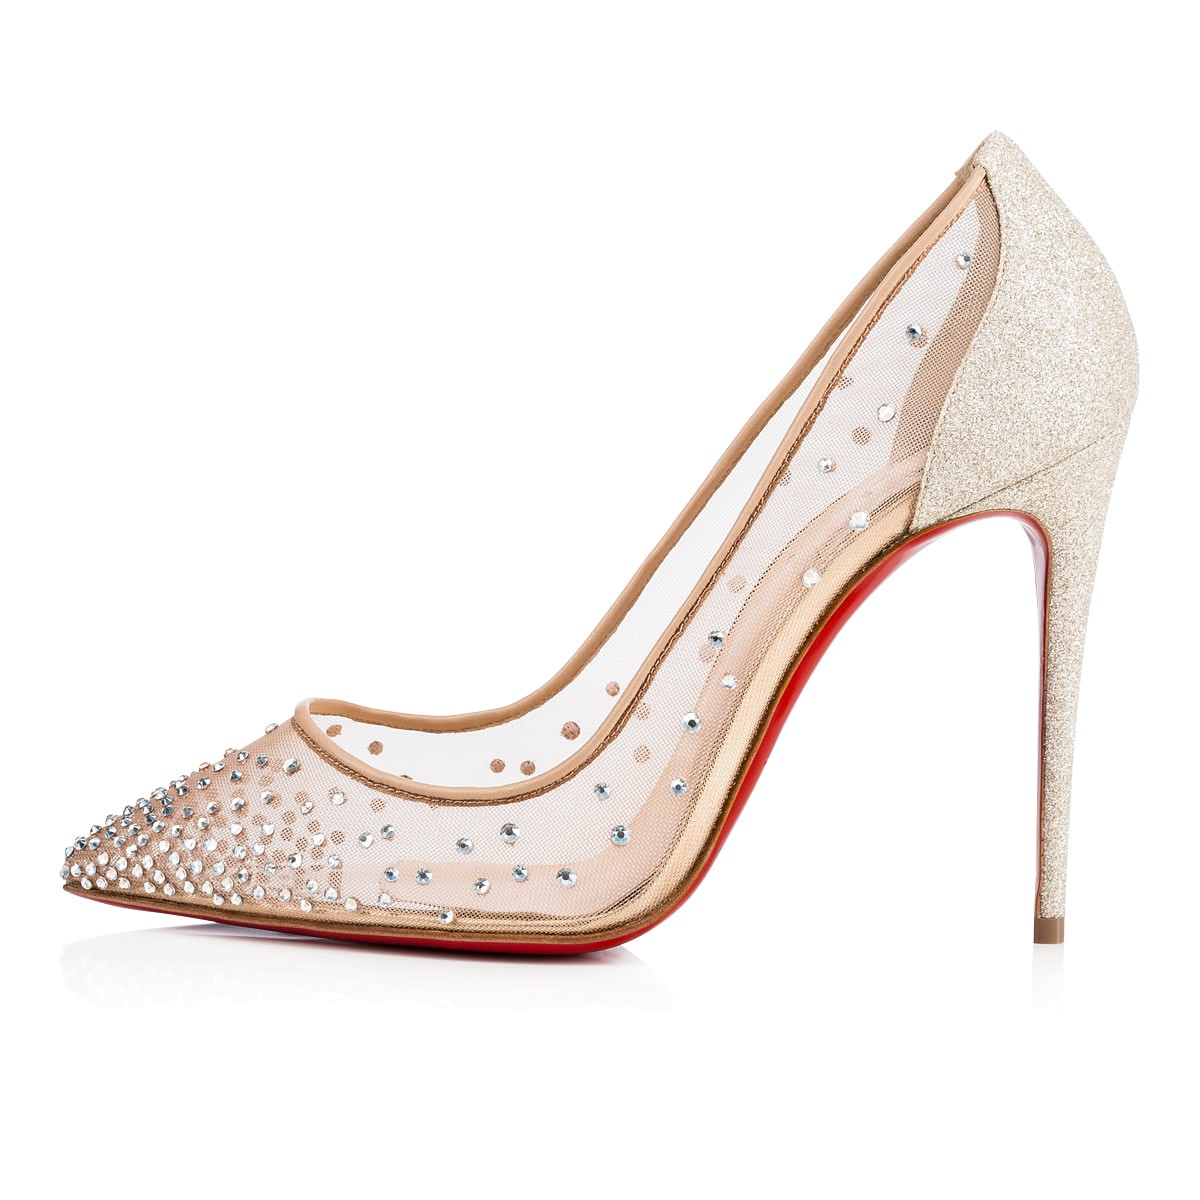 cheap for discount eb450 3050c Follies Strass 100 Vers Crystal Moonlight Strass - Women Shoes - Christian  Louboutin